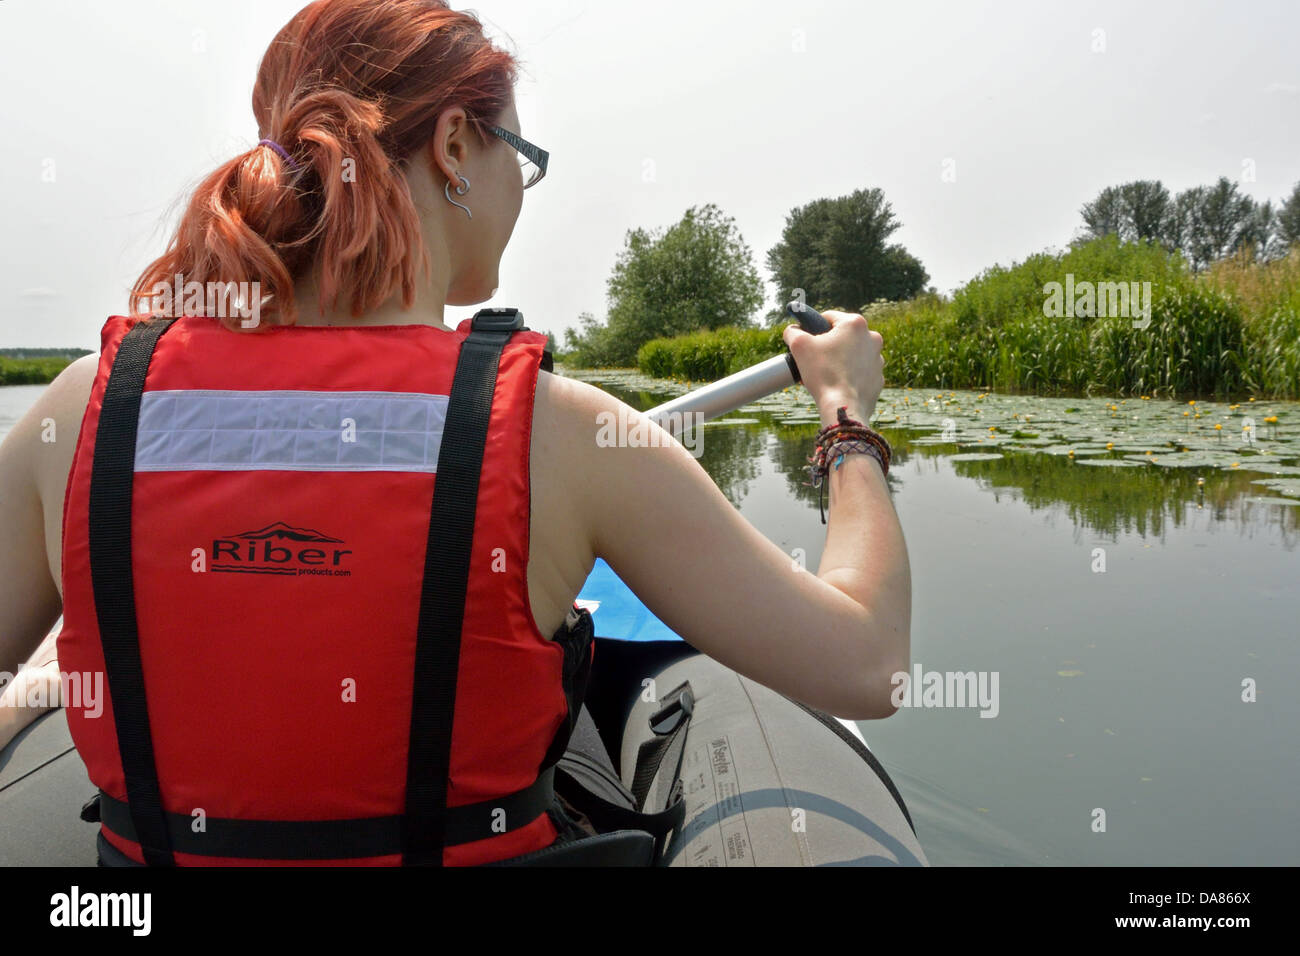 Young woman paddling a Sevylor Colorado Premium inflatable canoe on the River Great Ouse near Ely, Cambridgeshire, - Stock Image